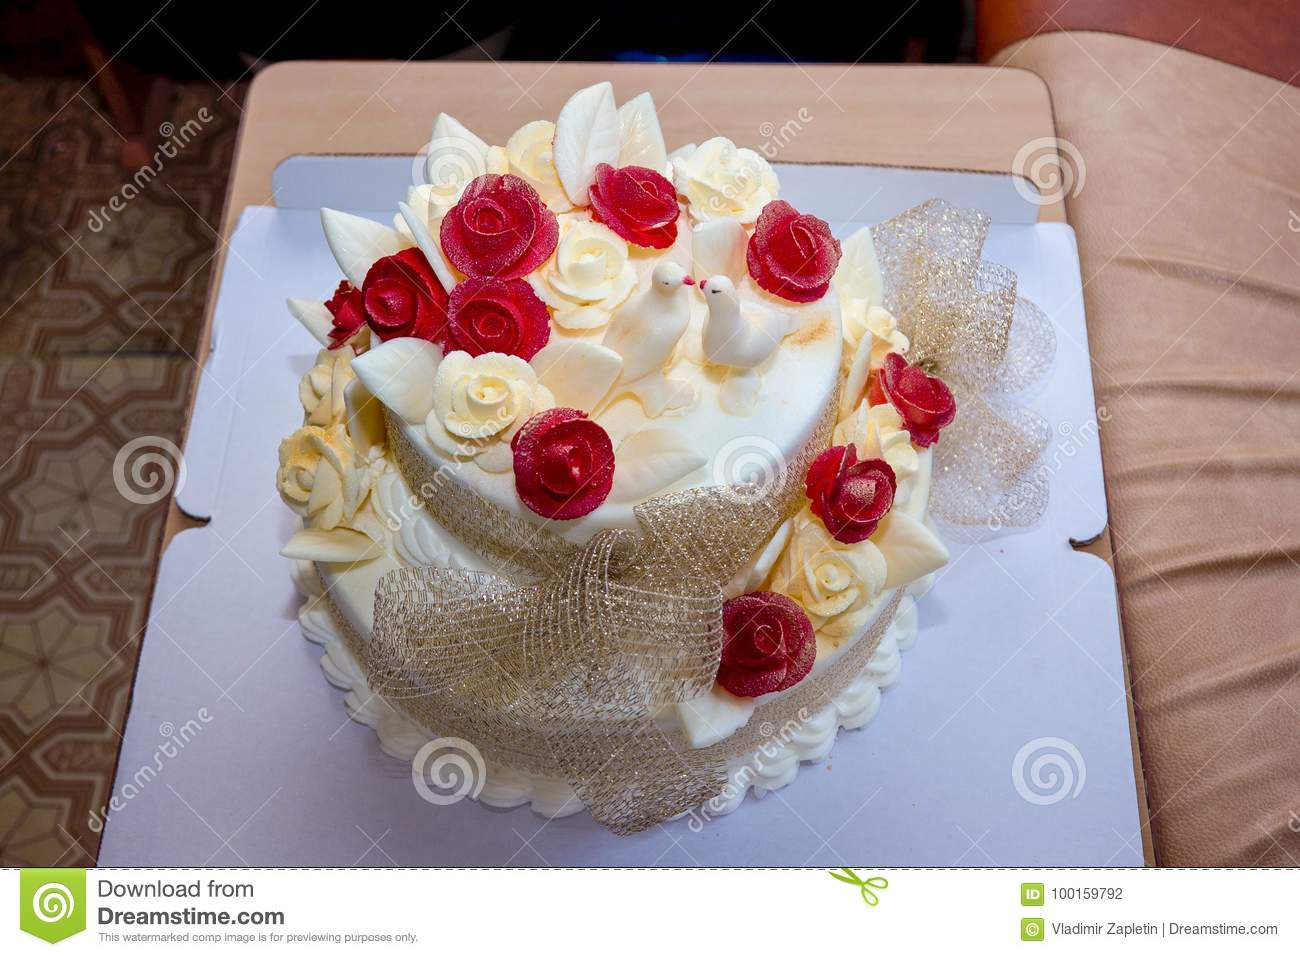 Wedding Cake With Roses And Doves Stock Photo - Image of marriage ...